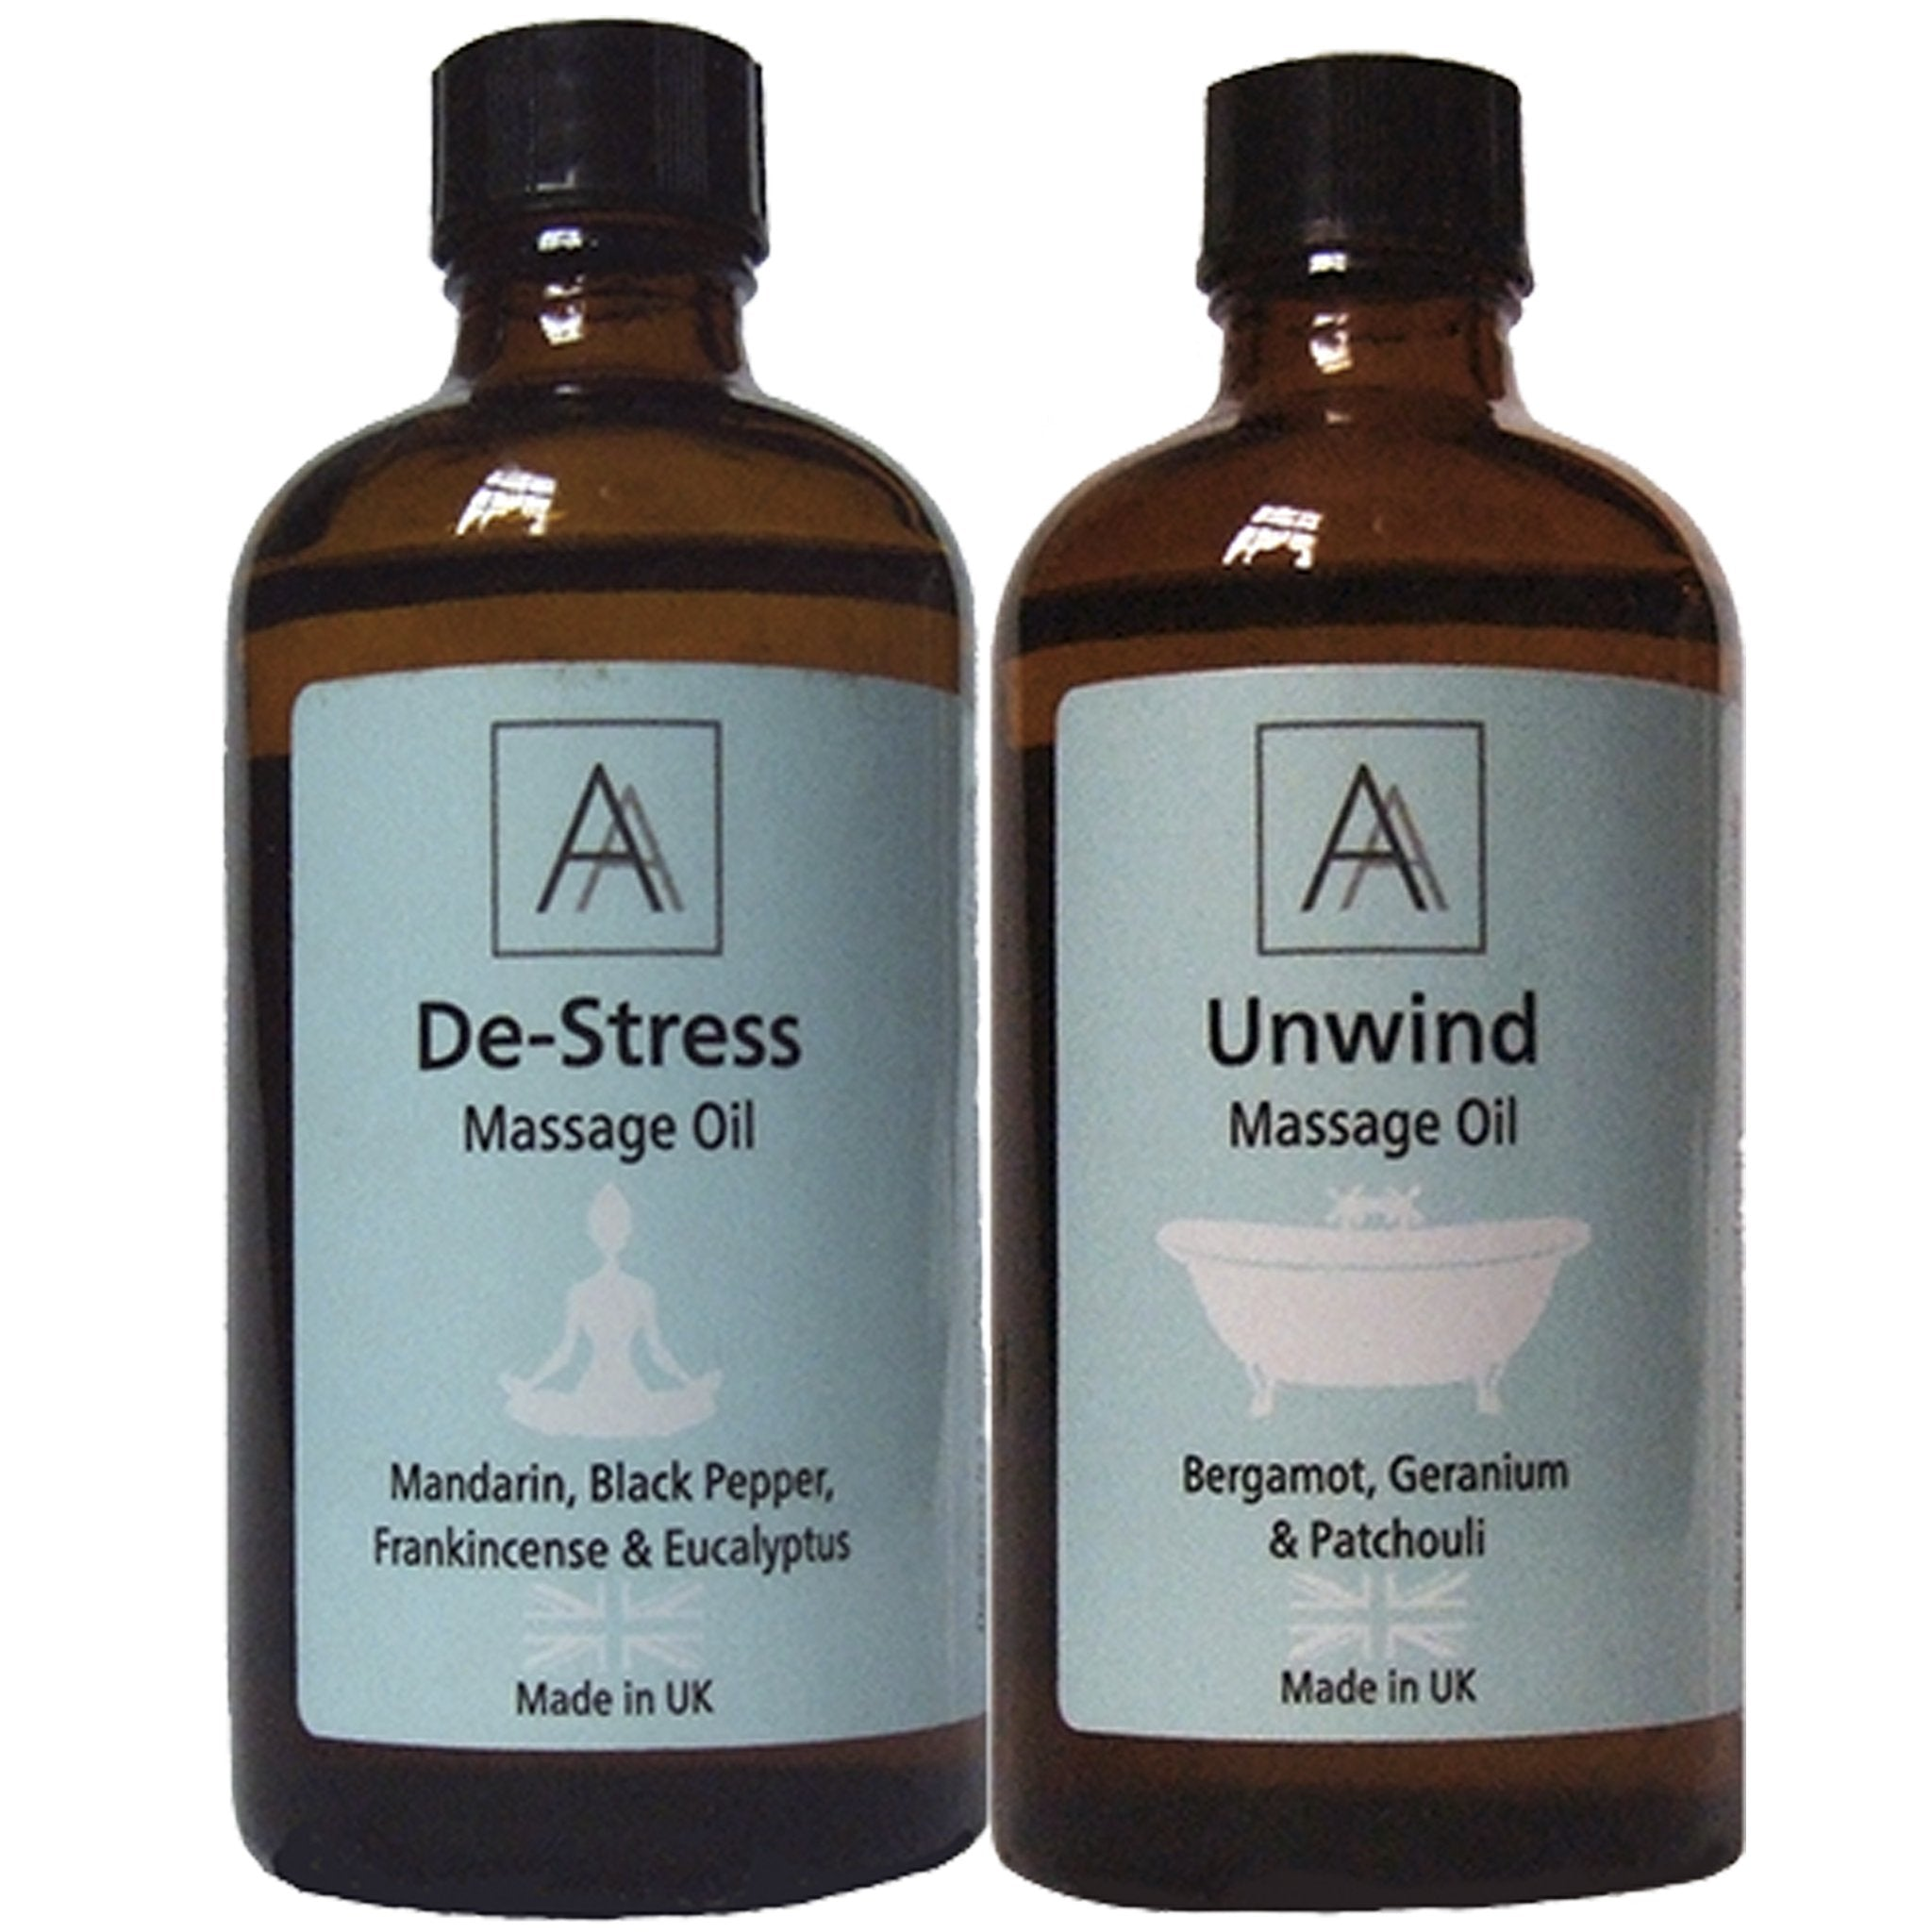 De-stress and Unwind Massage Oil's